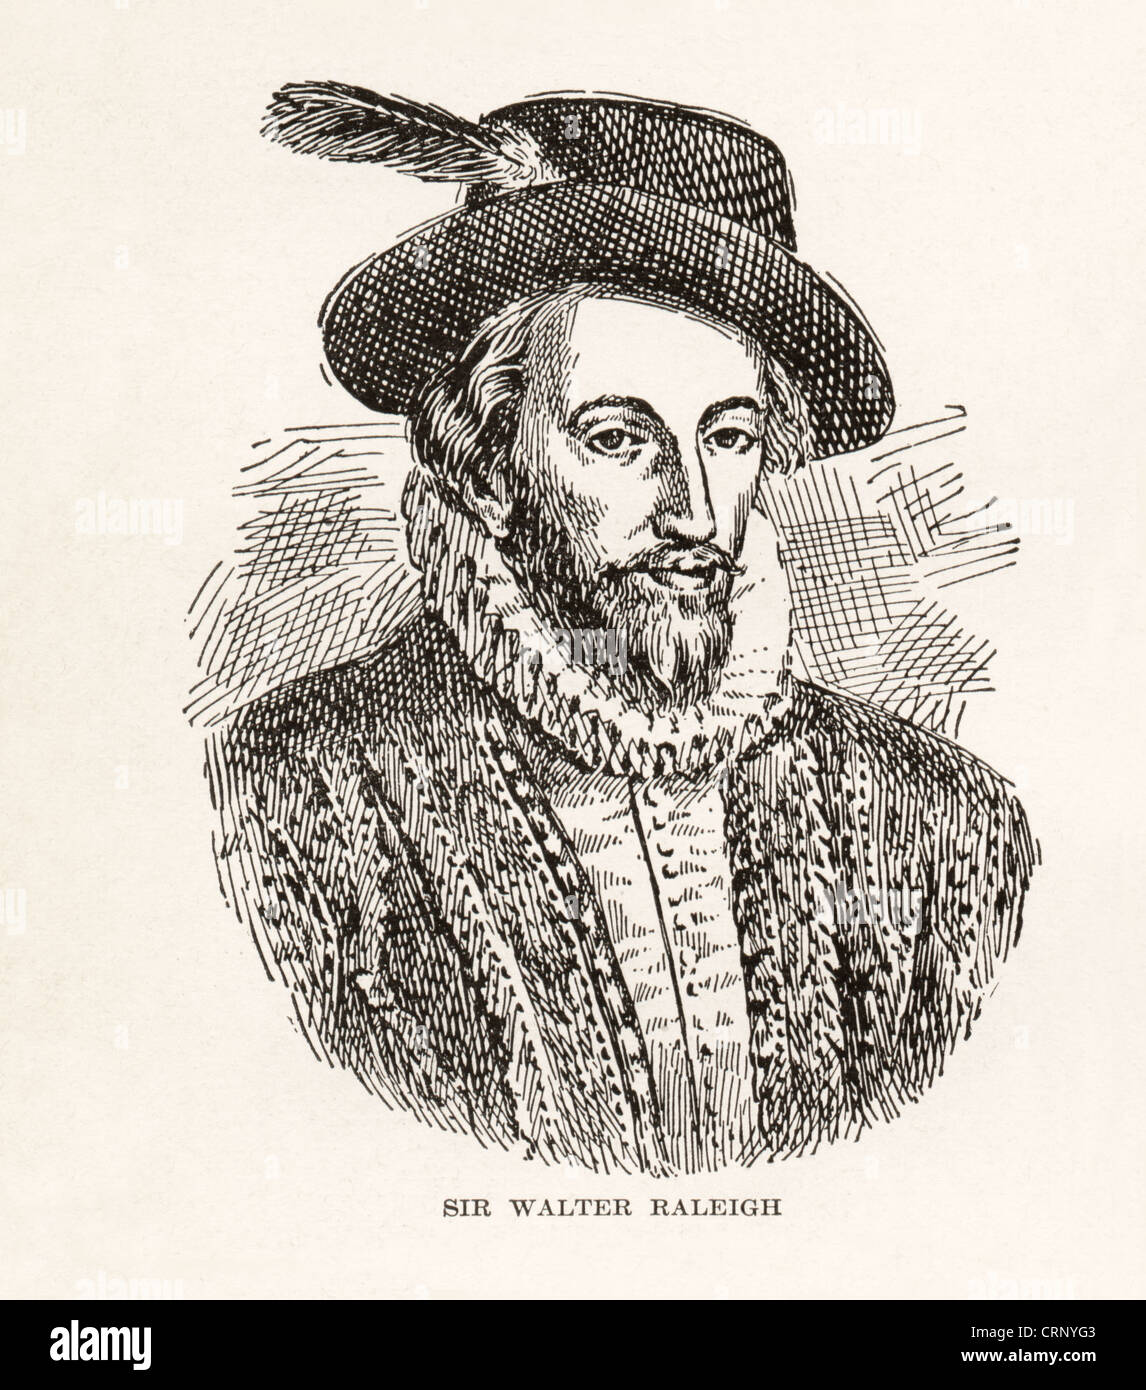 Vintage engraving of Sir Walter Raleigh, English navigator, soldier, writer, 1552-1618, - Stock Image